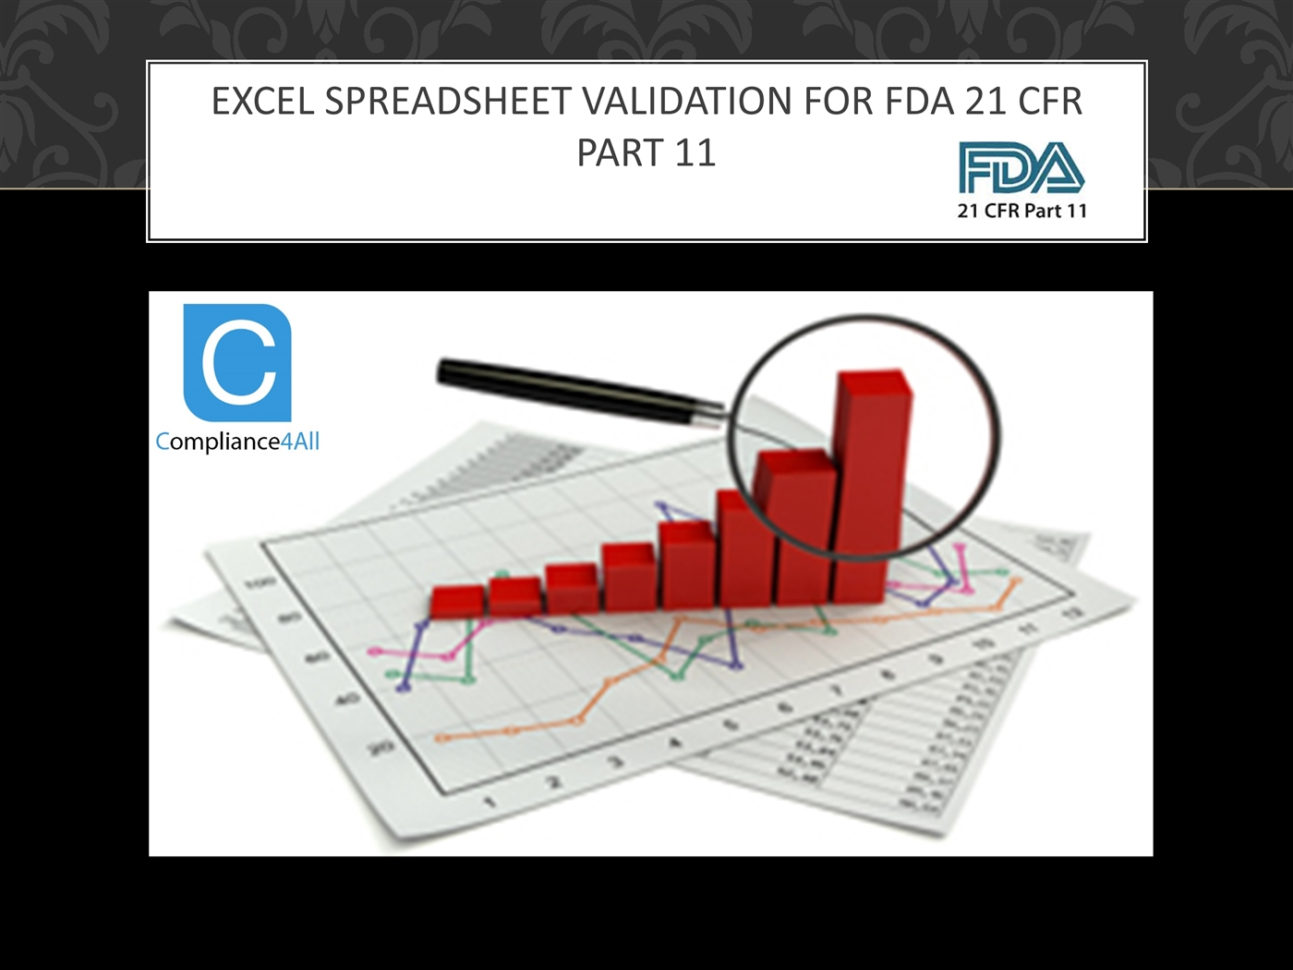 Excel Spreadsheet Validation Intended For Excel Spreadsheet Validation For Fda 21 Cfr Part.pptx Powerpoint